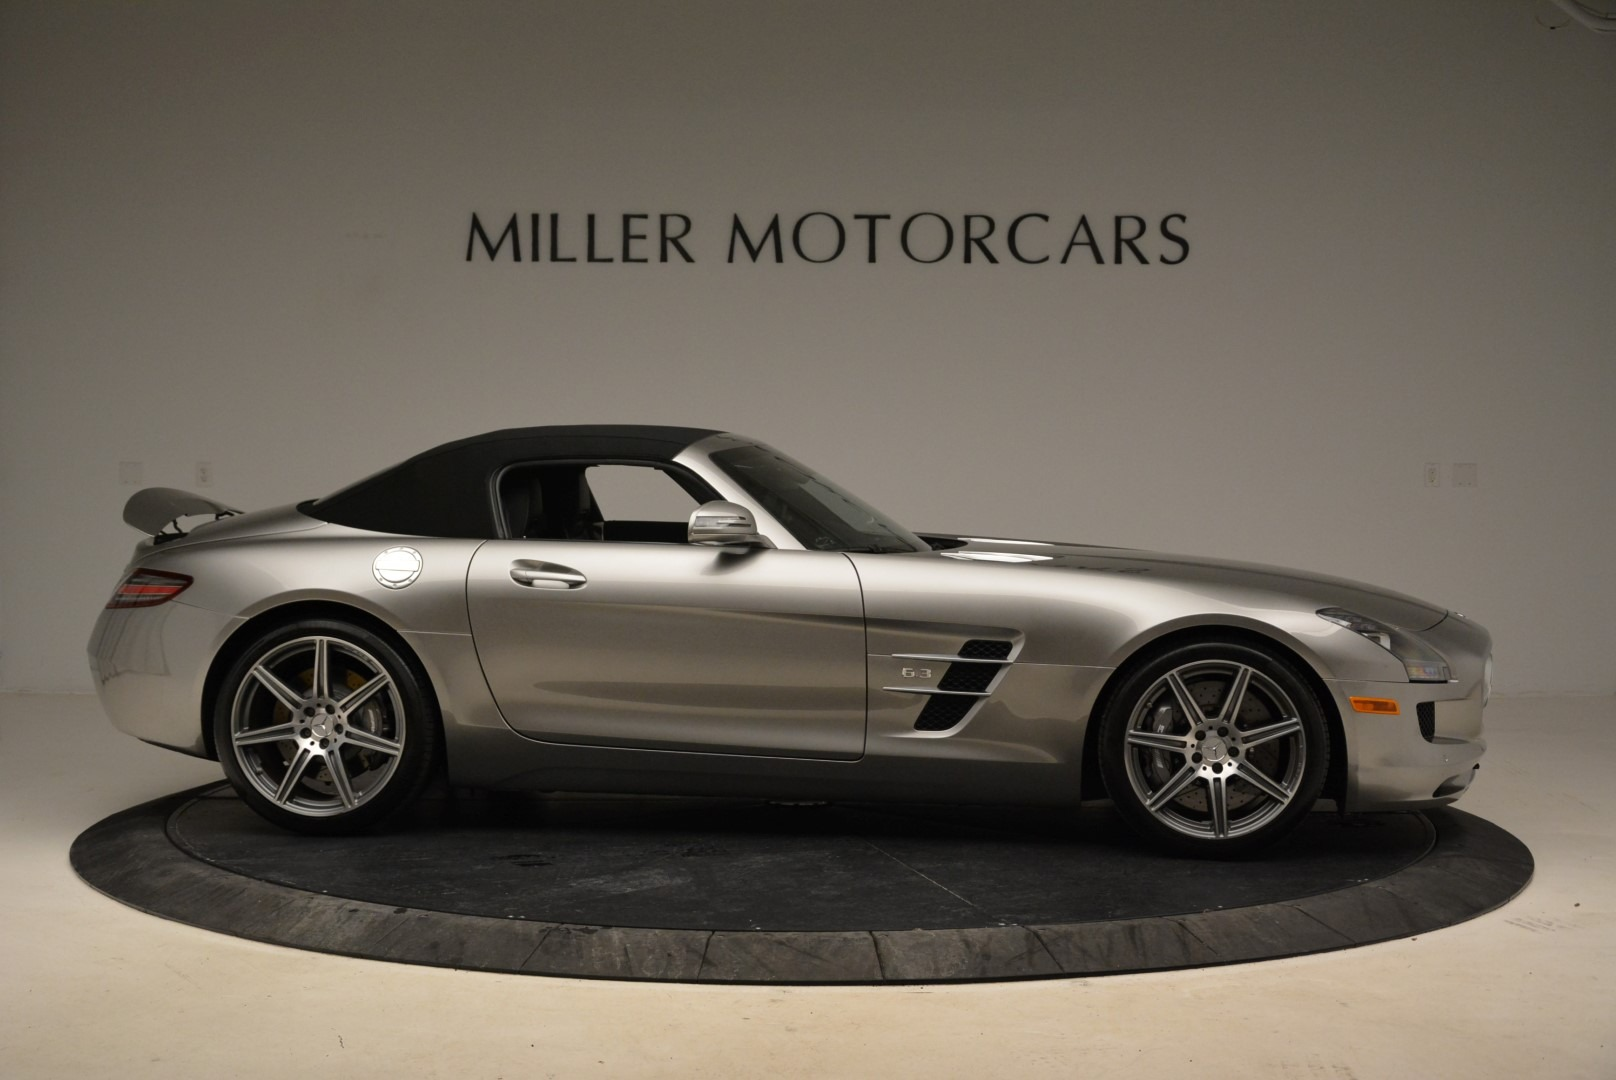 Used 2012 Mercedes-Benz SLS AMG  For Sale In Greenwich, CT. Alfa Romeo of Greenwich, 7330 2068_p18